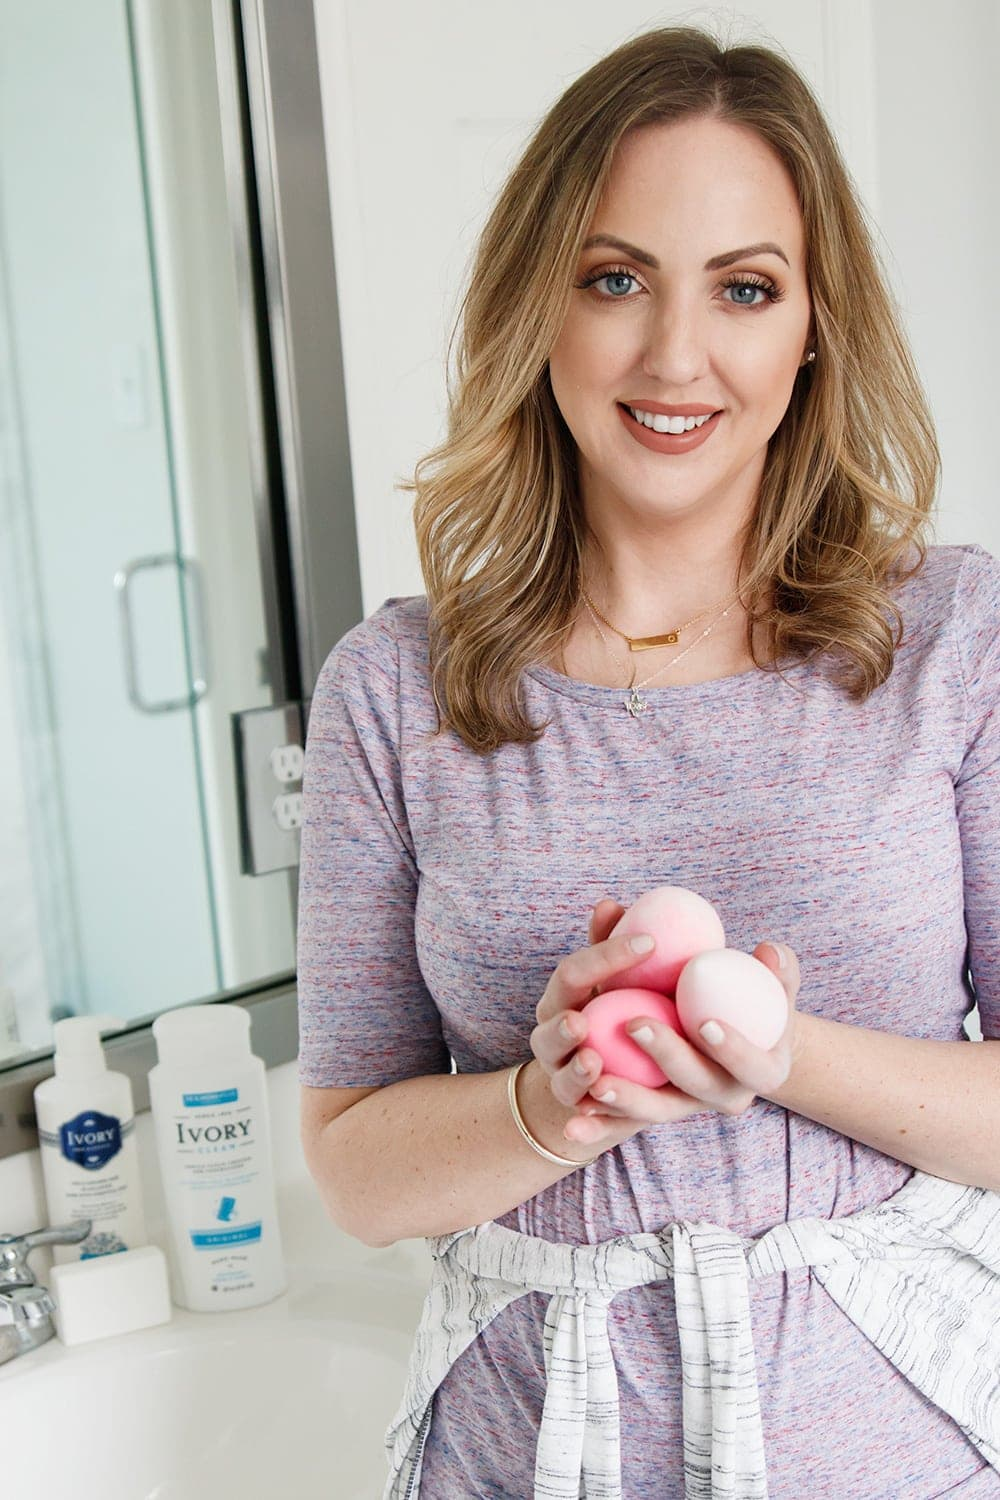 Houston blogger Meg O. on the Go shows how to clean makeup sponges with Ivory soap